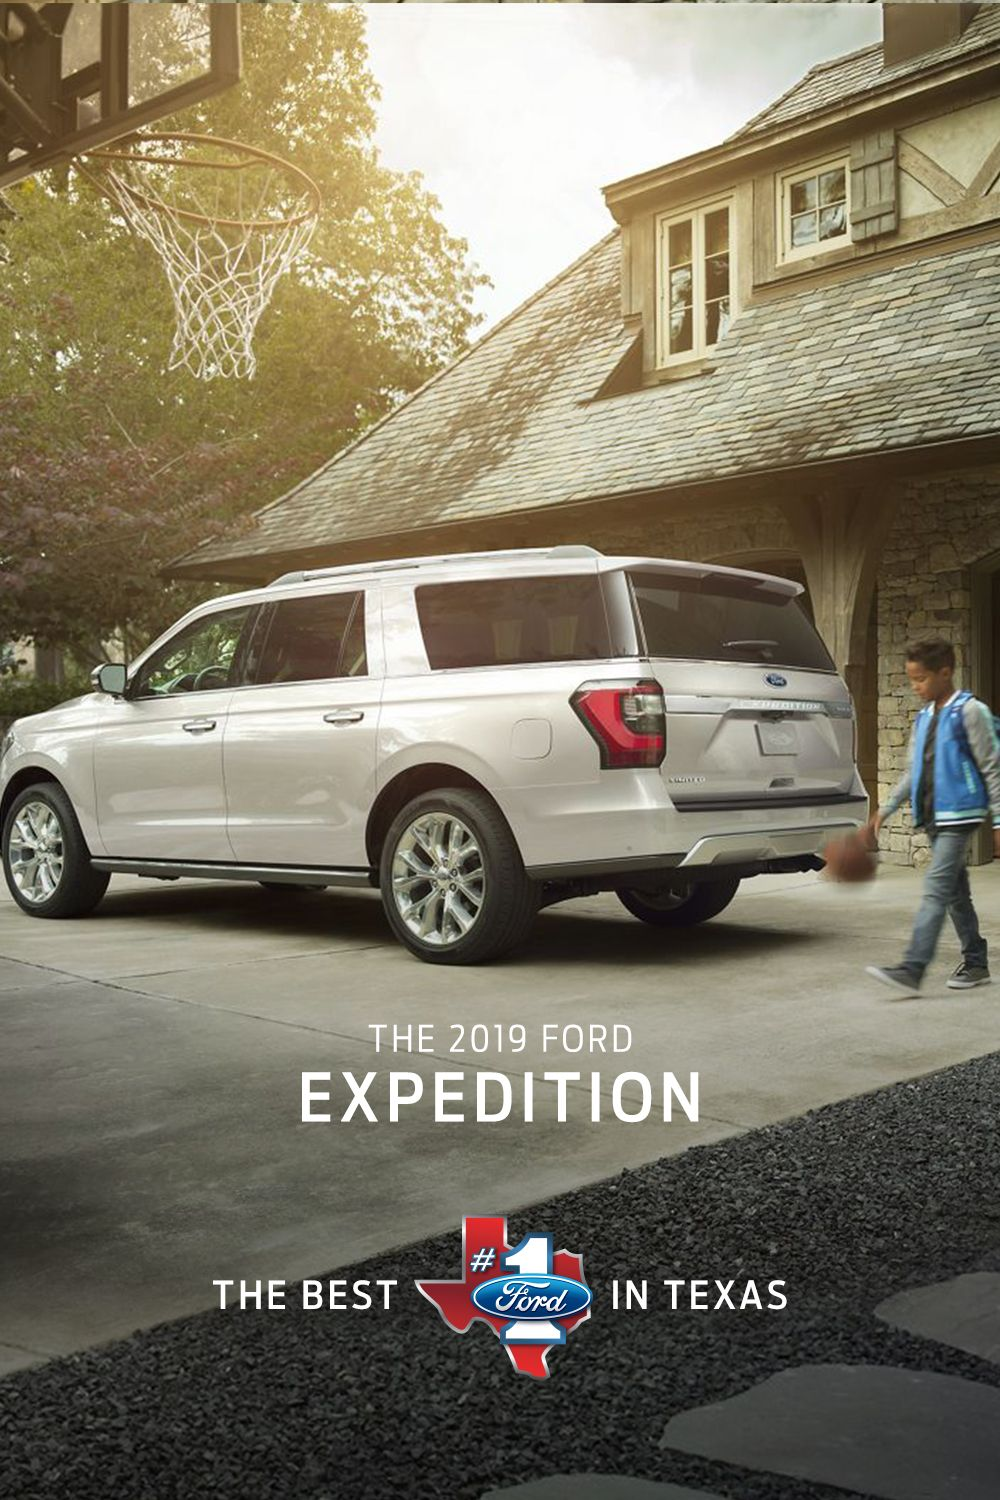 The 2019 Ford Expedition Is The Perfect Suv For Your Family With A Spacious Third Row And Convenient Tip And Slide Seats You Ll Be The Most Pop Ford Expedition